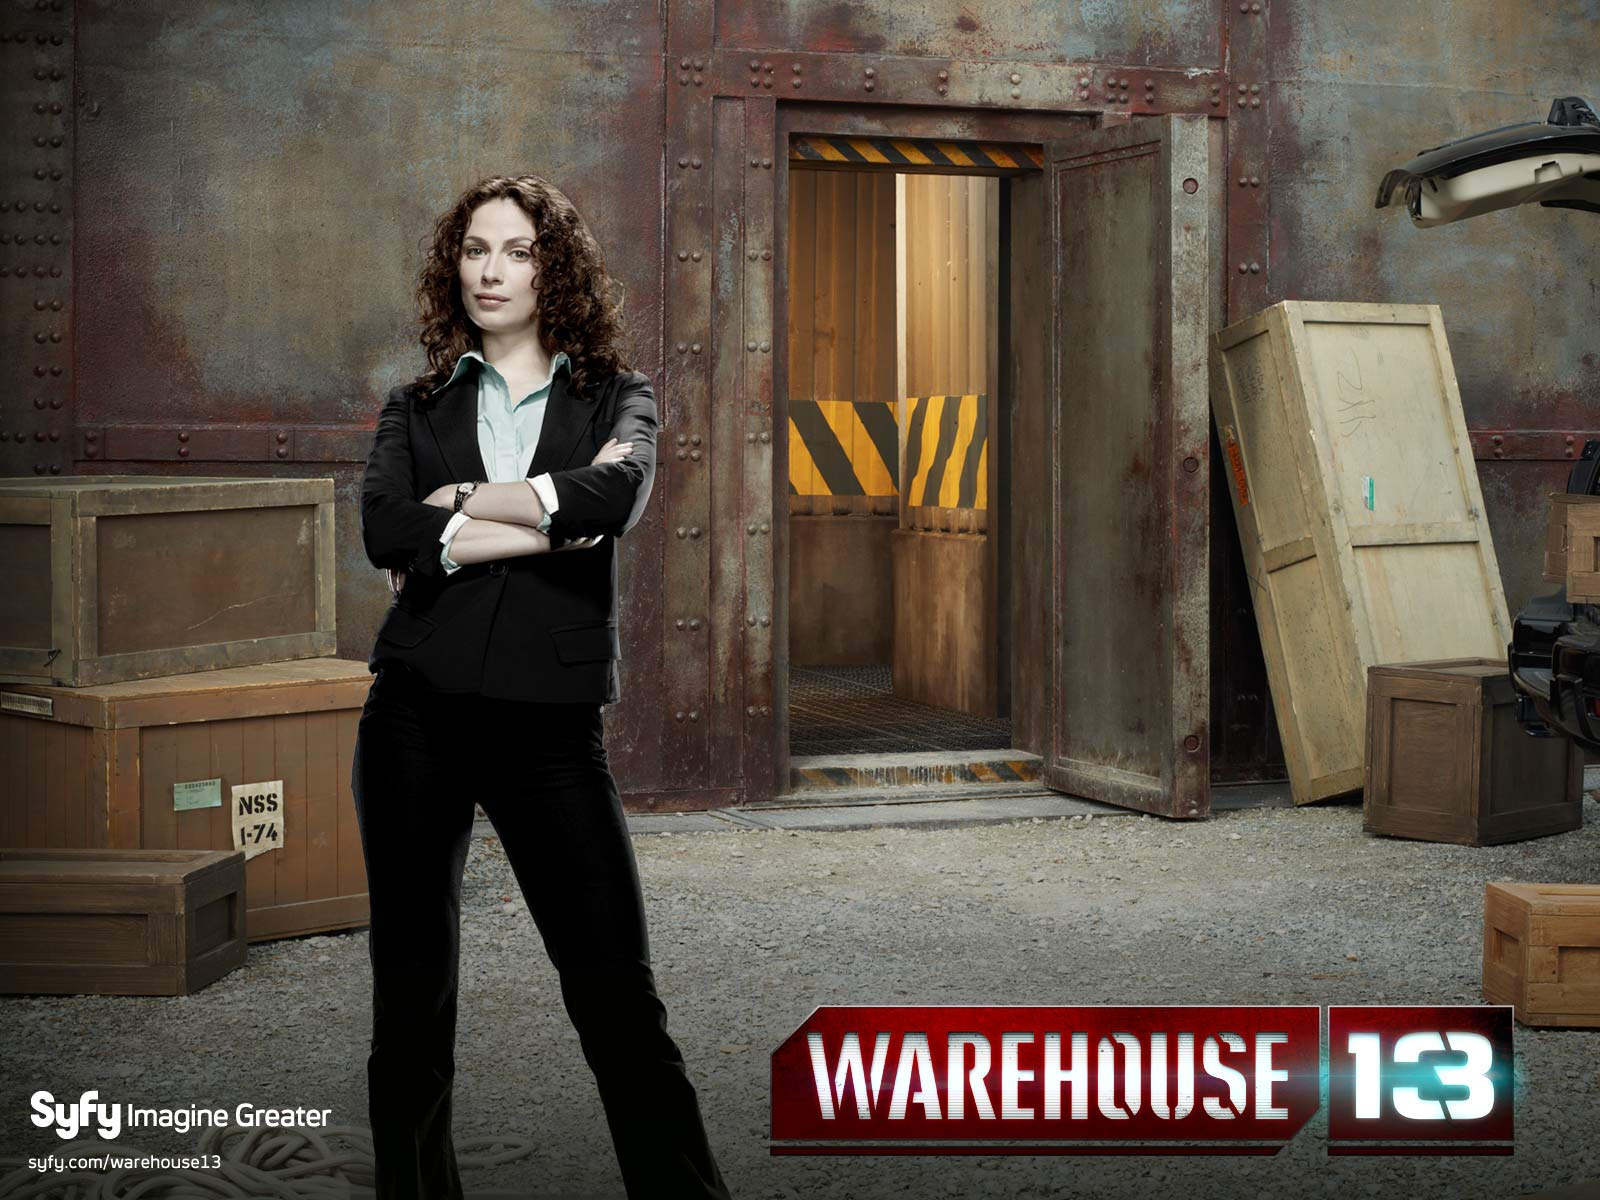 Kelly Warehouse Warehouse 13 Warehouse 13 Wallpaper 34569047 Fanpop